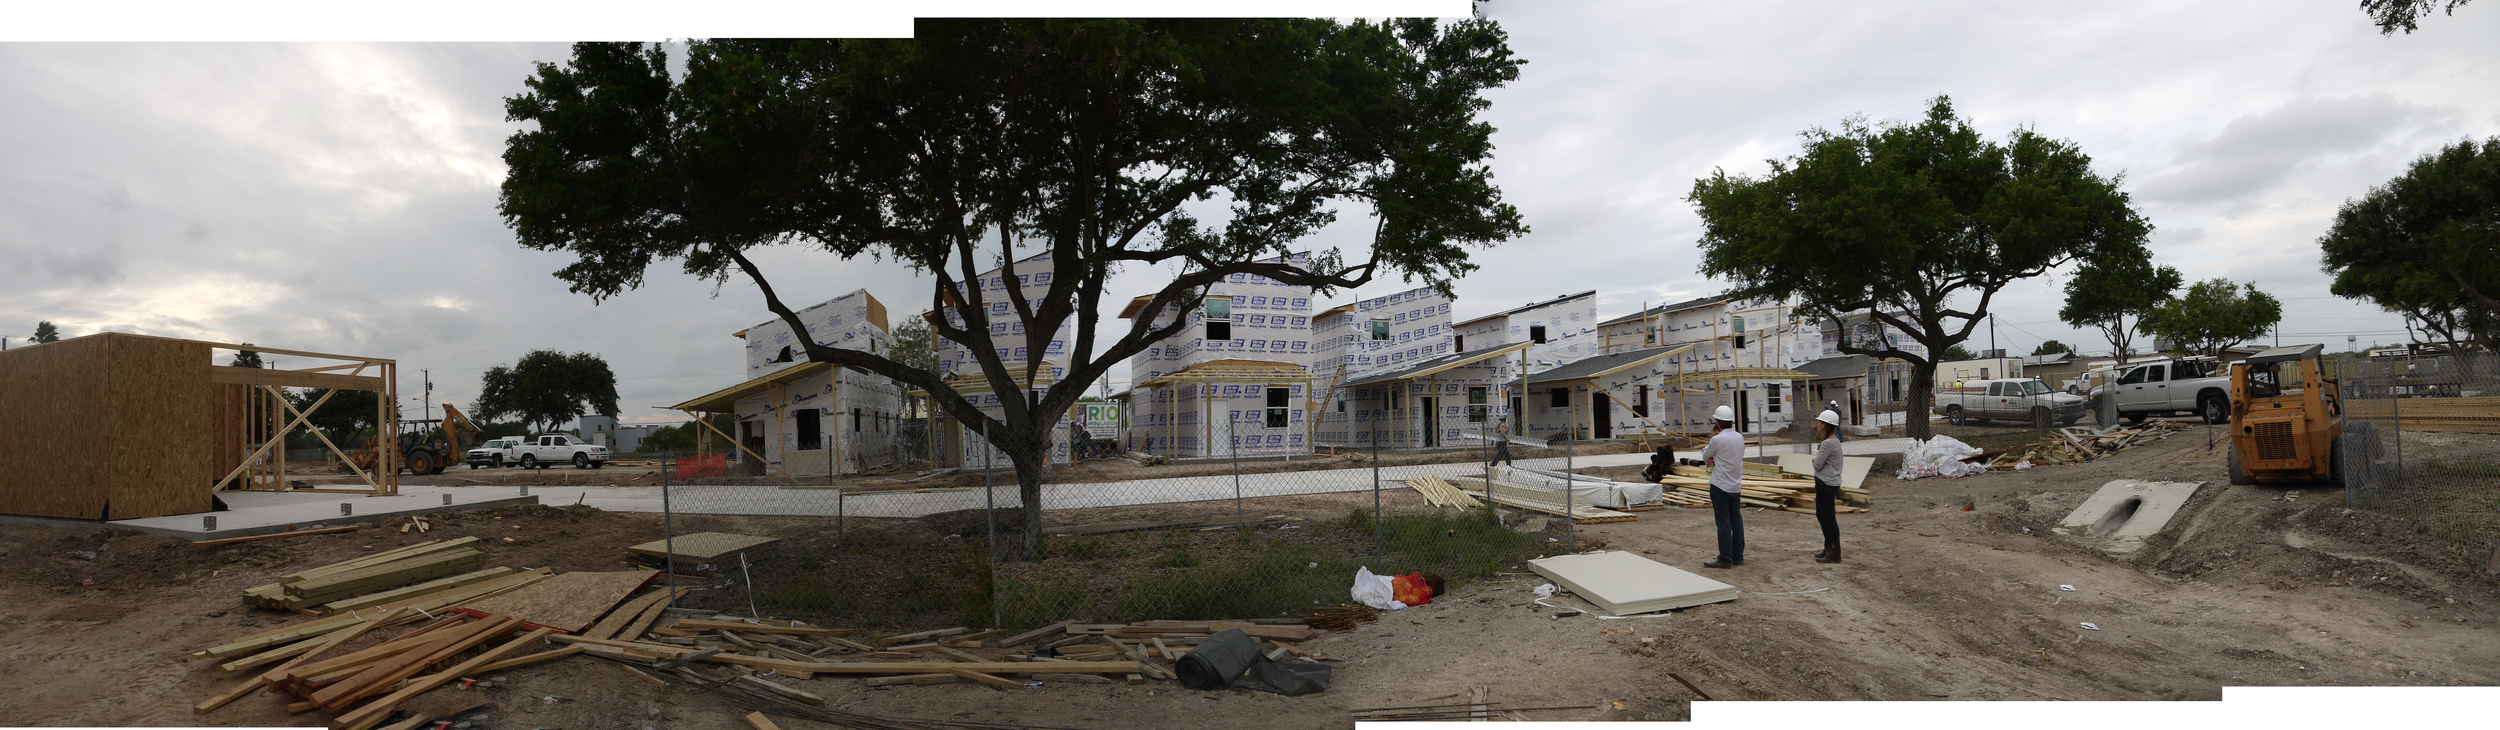 First community building under construction on the left.